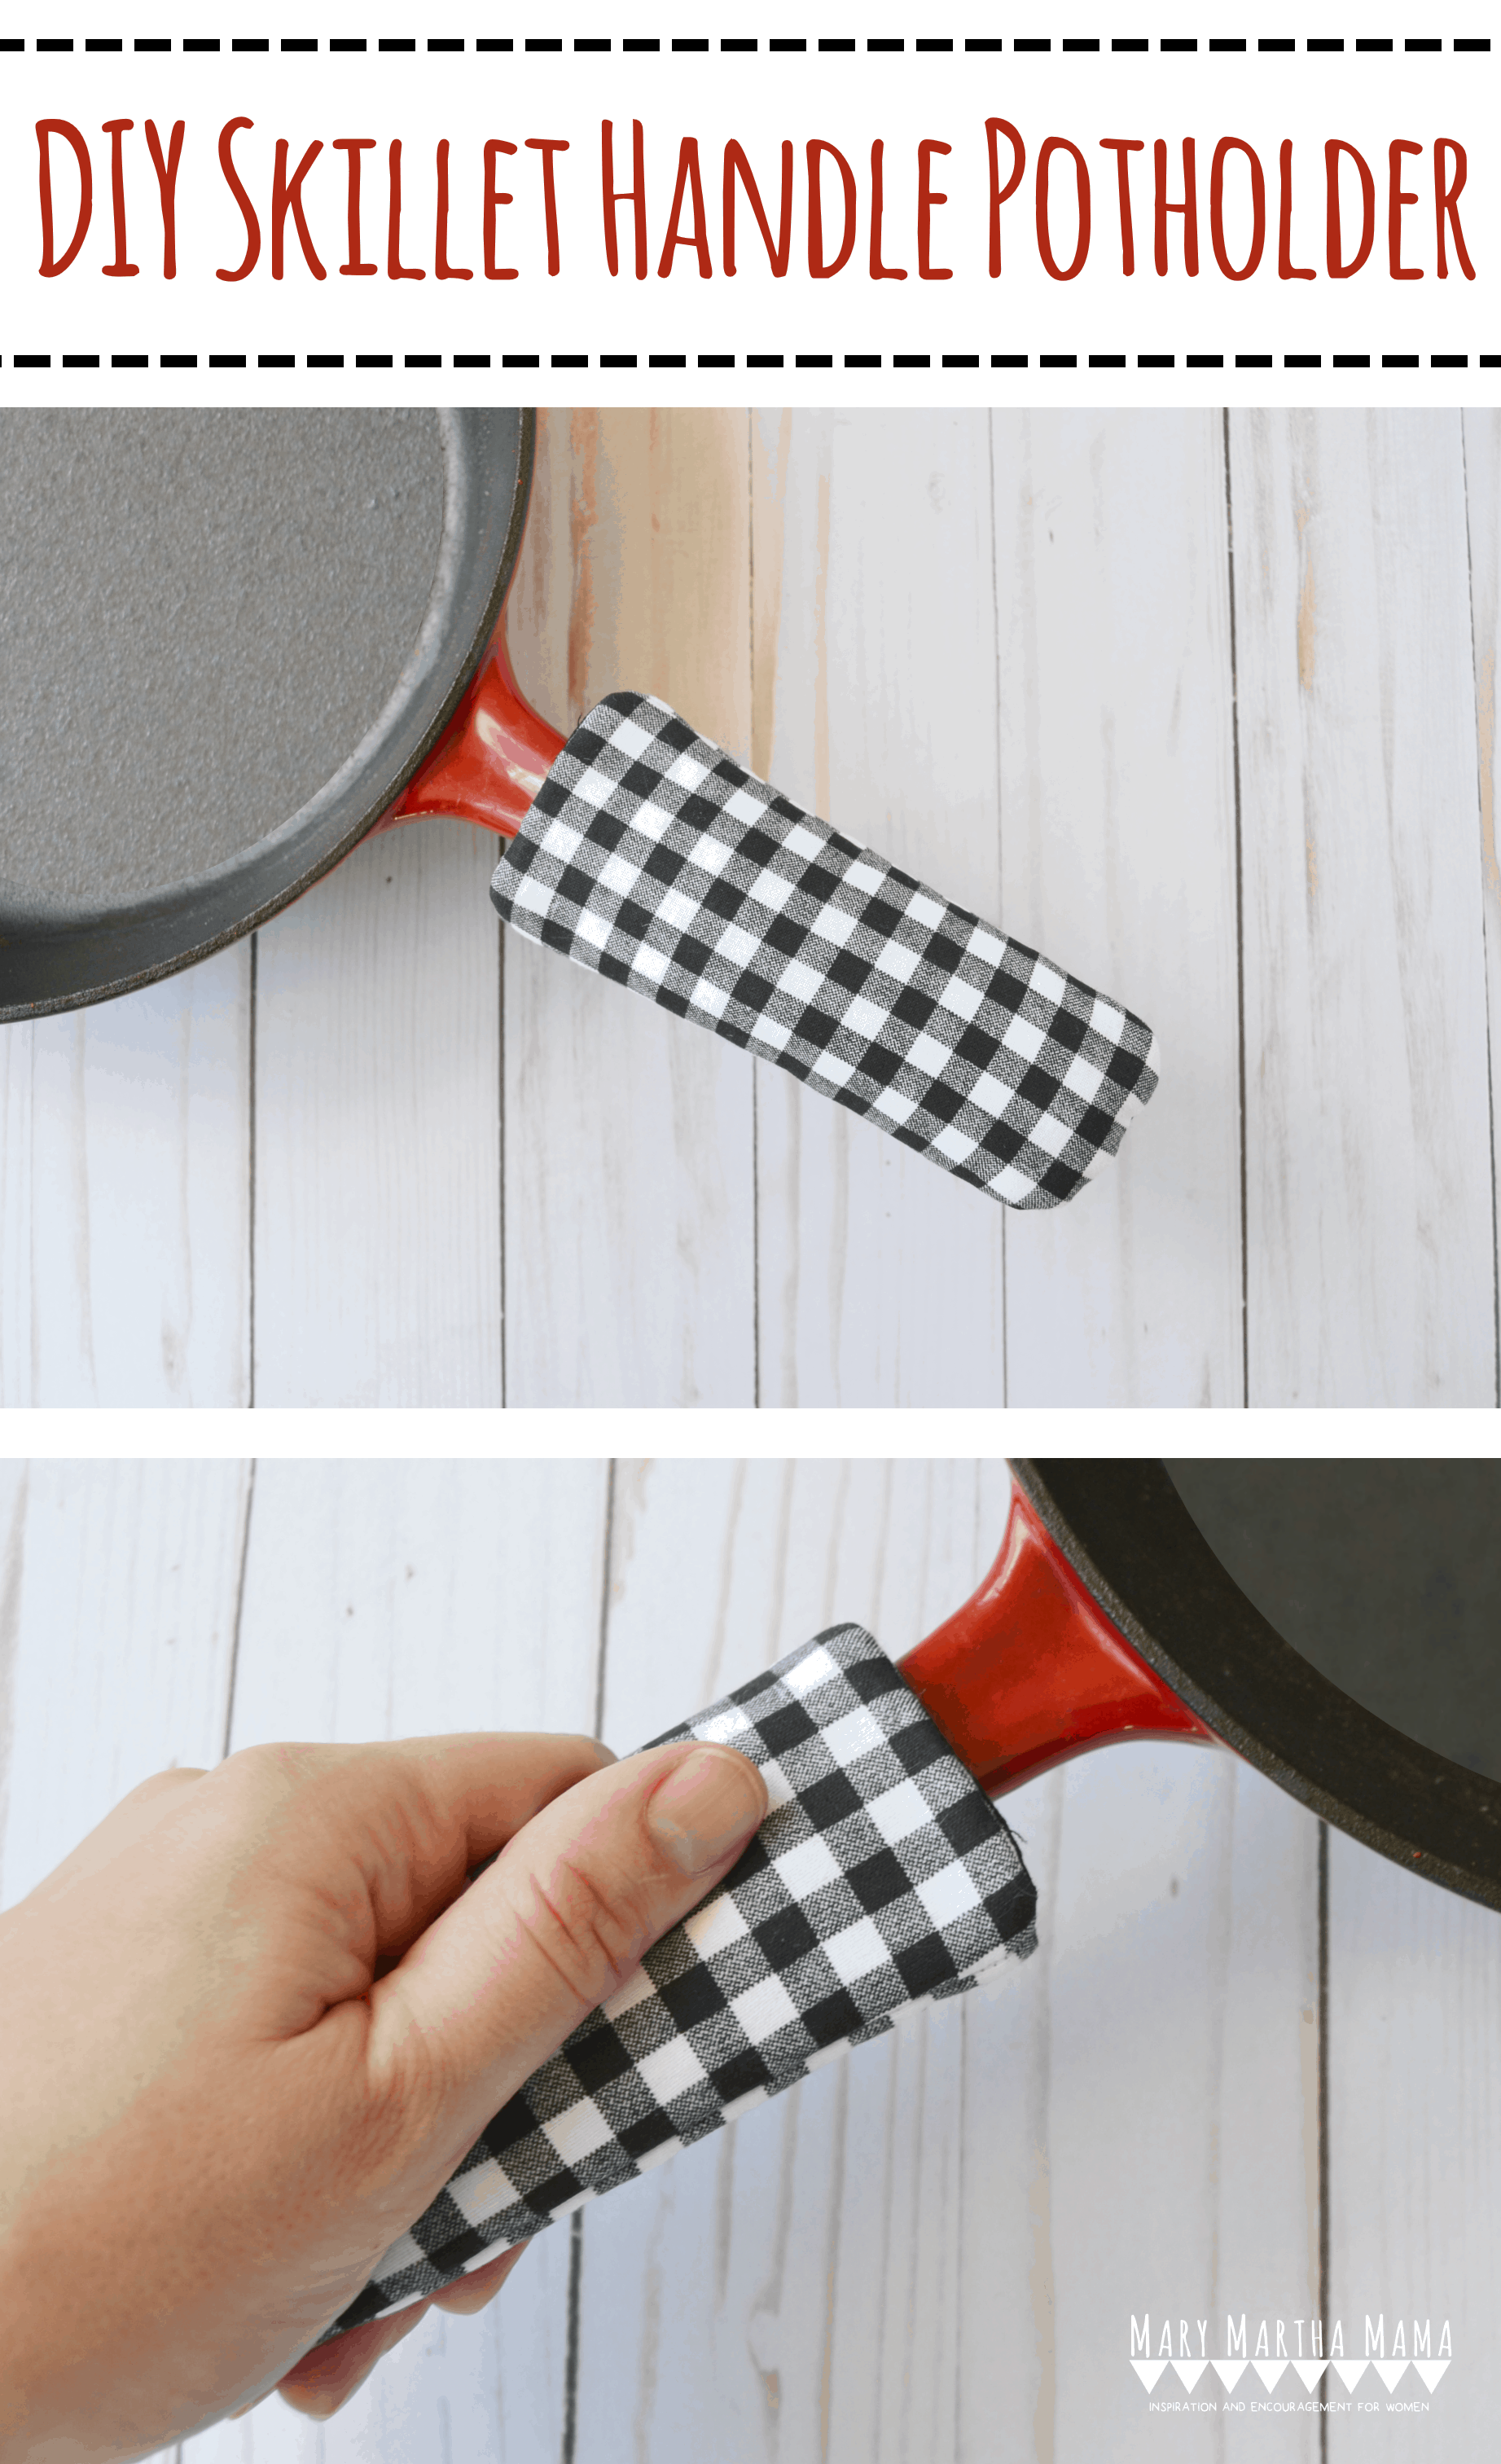 Book Cover With Handles Tutorial : Cast iron skillet handle cover tutorial mary martha mama